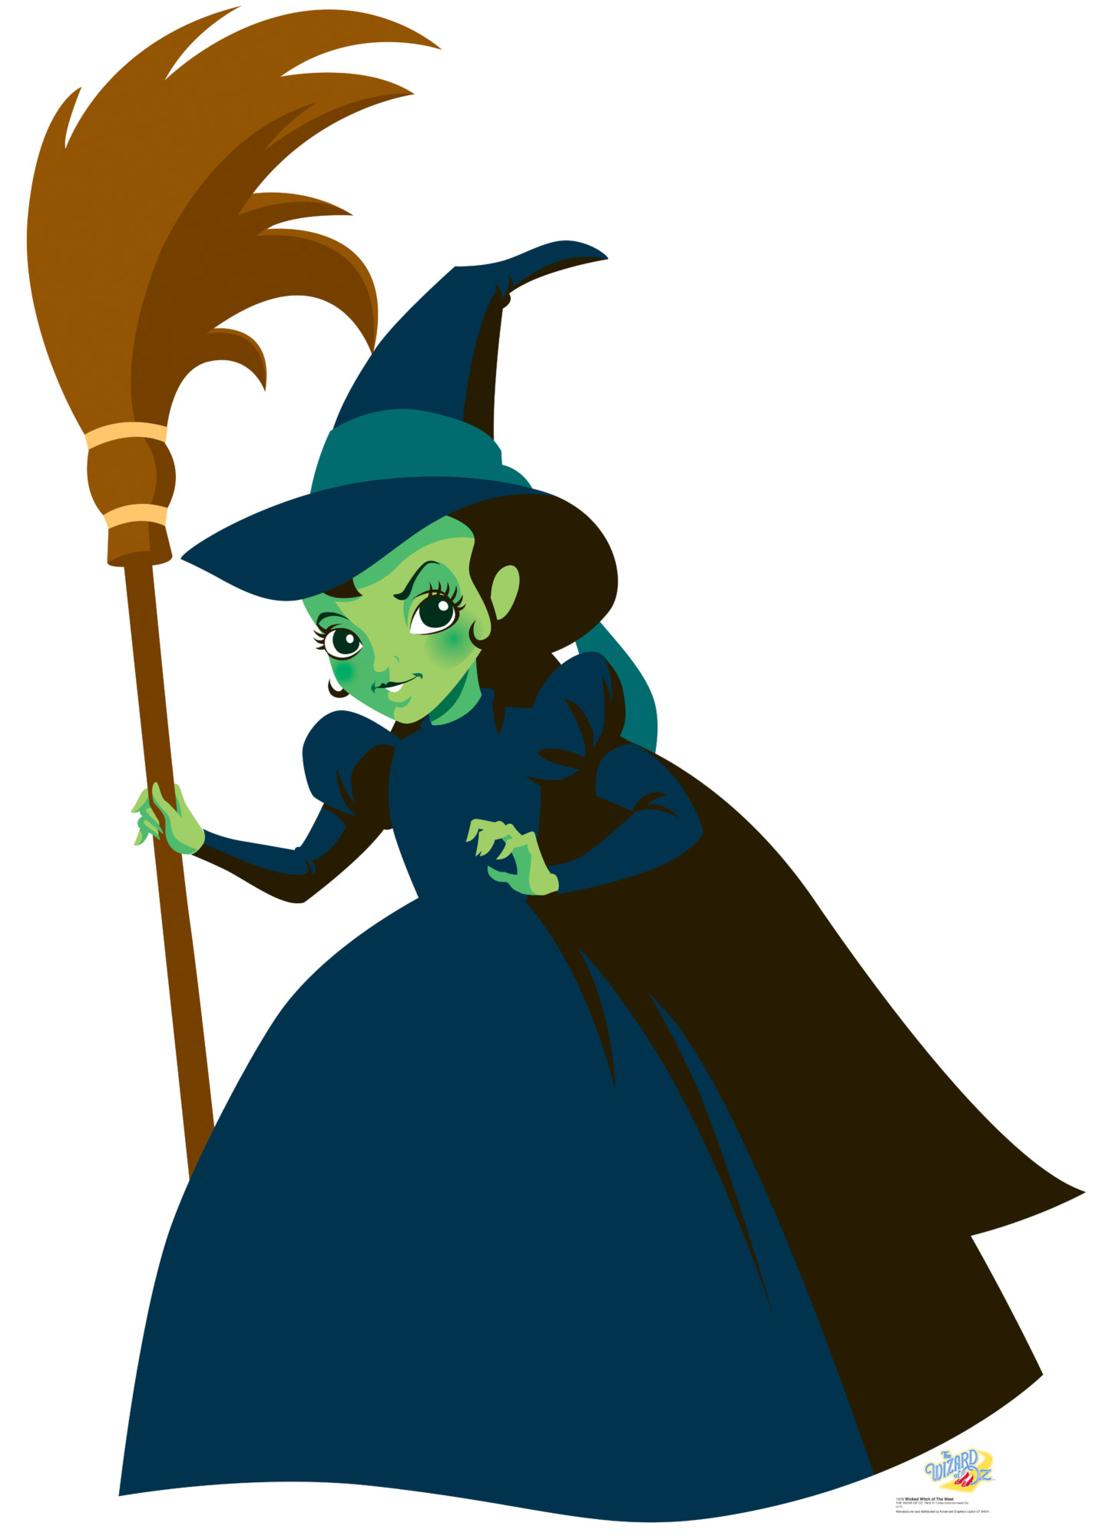 Free PNG Wizard Of Oz Images - 41755